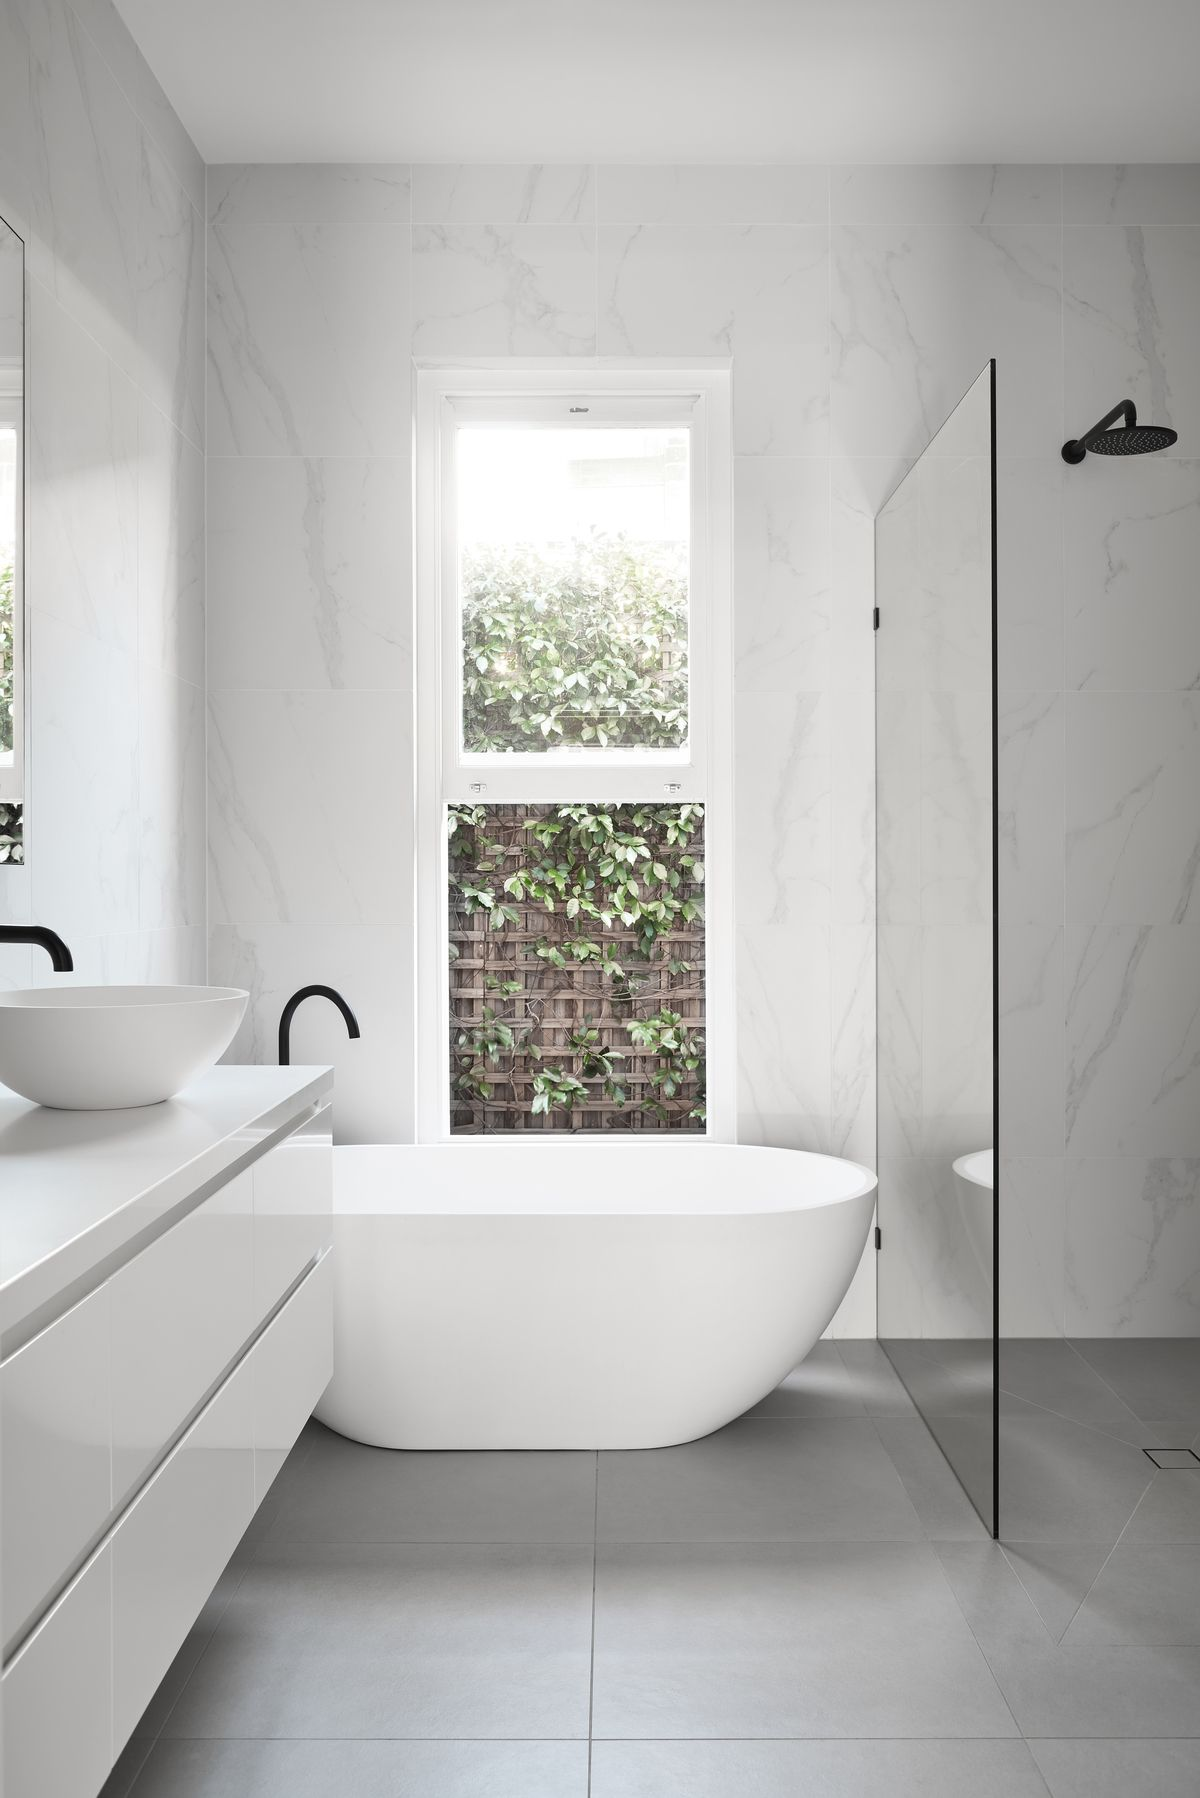 Gallery of Caulfield North by Pleysier Perkins Architects / The Local Project #bathroomrenoideas